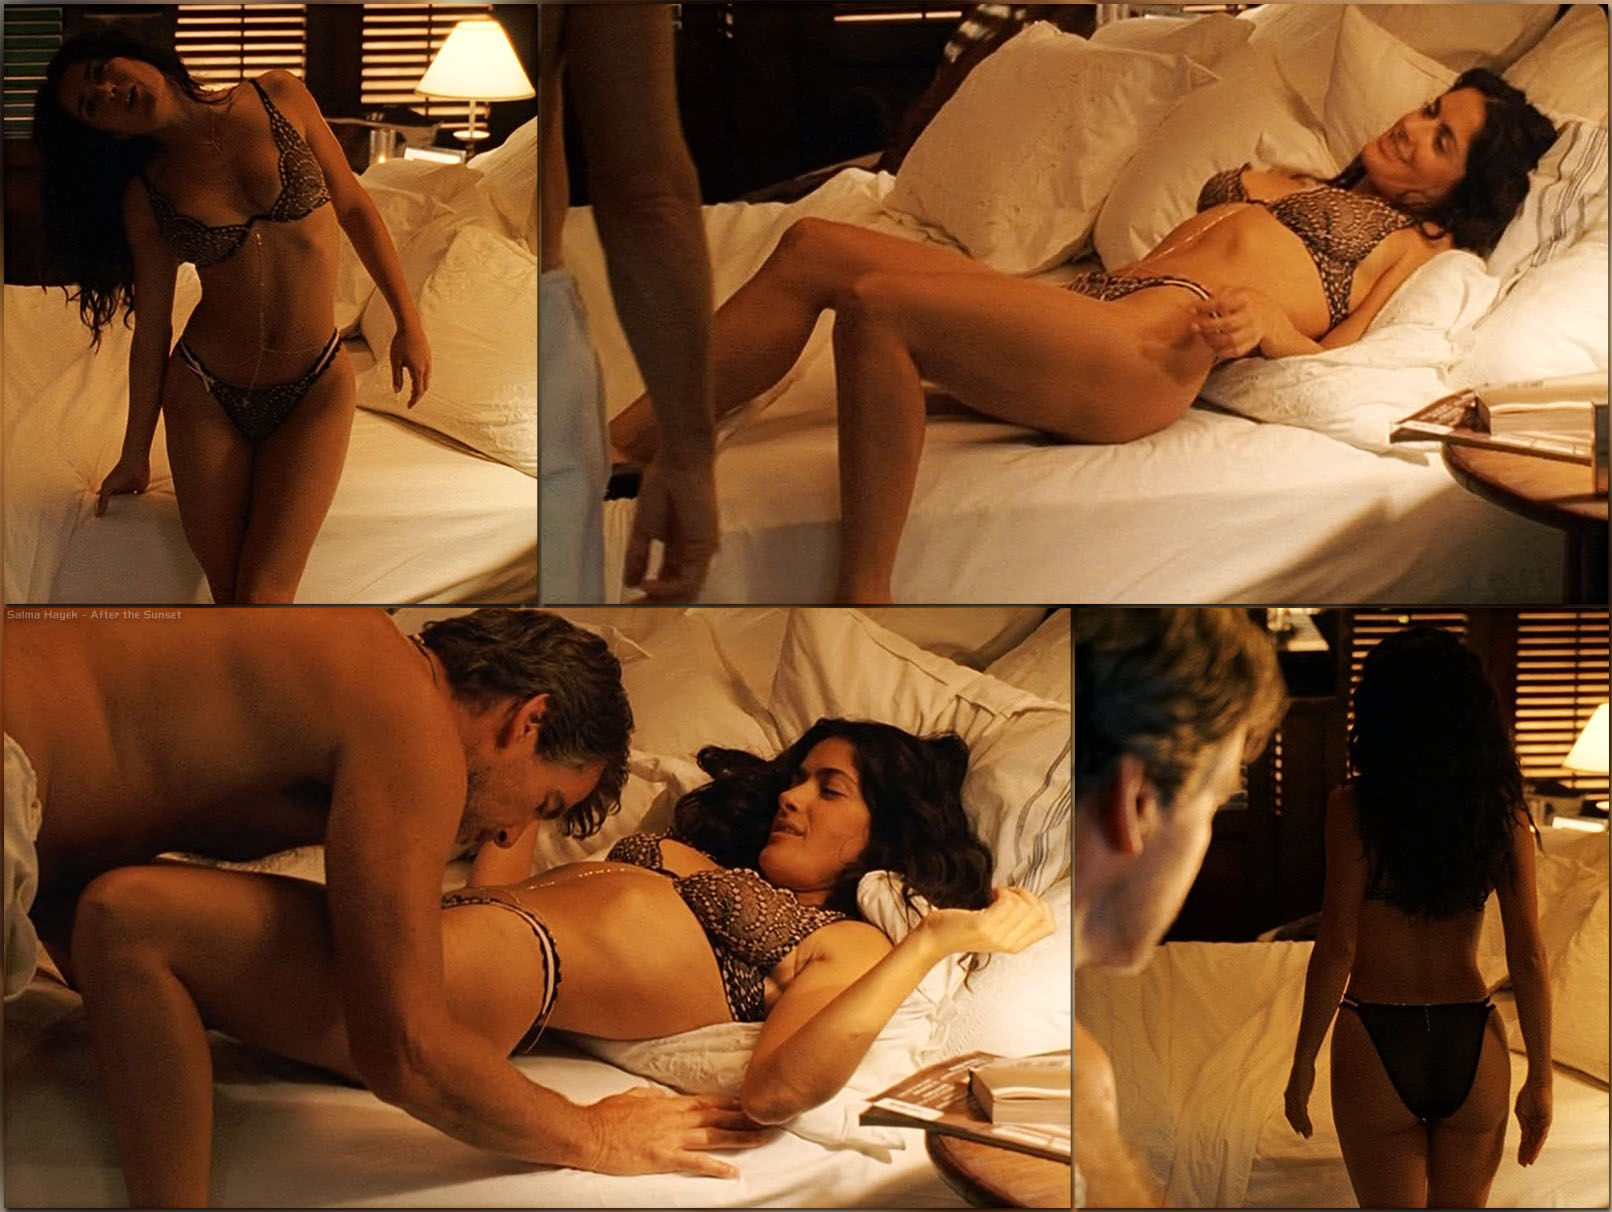 Sex scene salma hayek, hot women masterbtinm